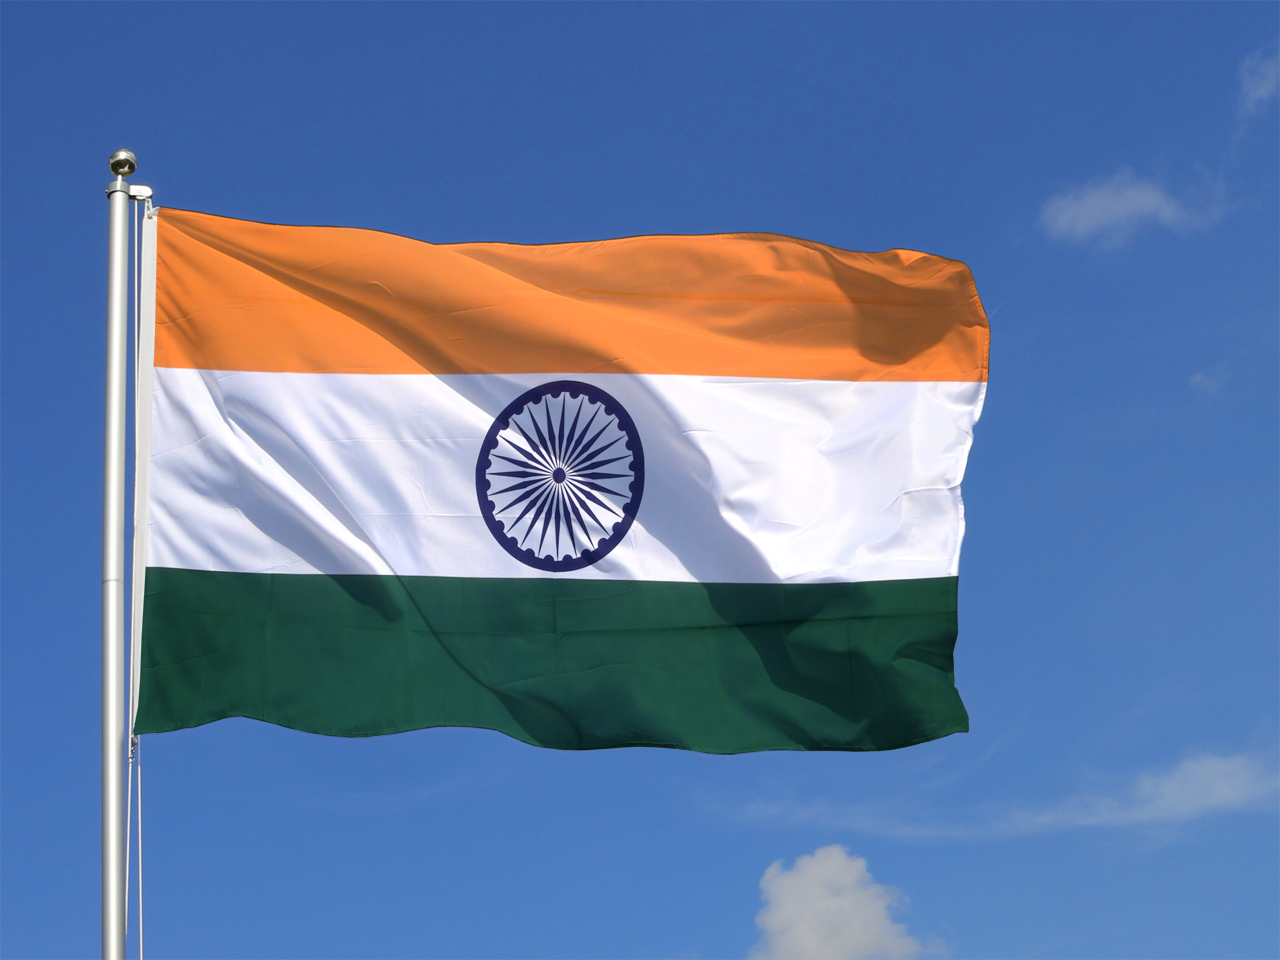 A very Happy 75th Independence Day of India to all.